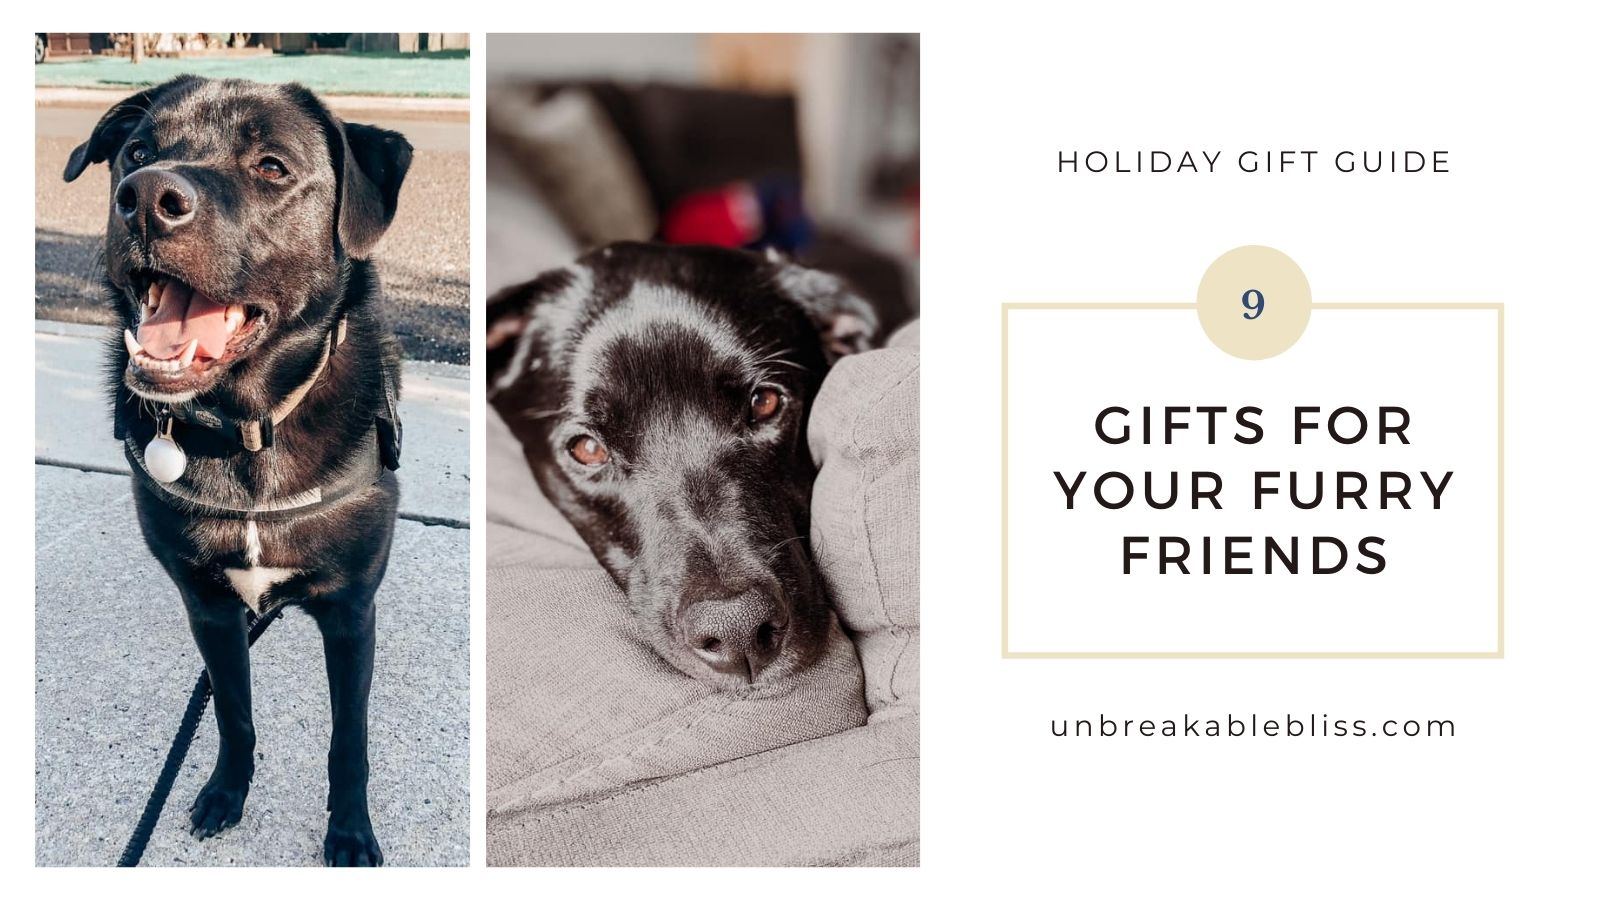 Holiday gift guide: Gift ideas for your furry friends